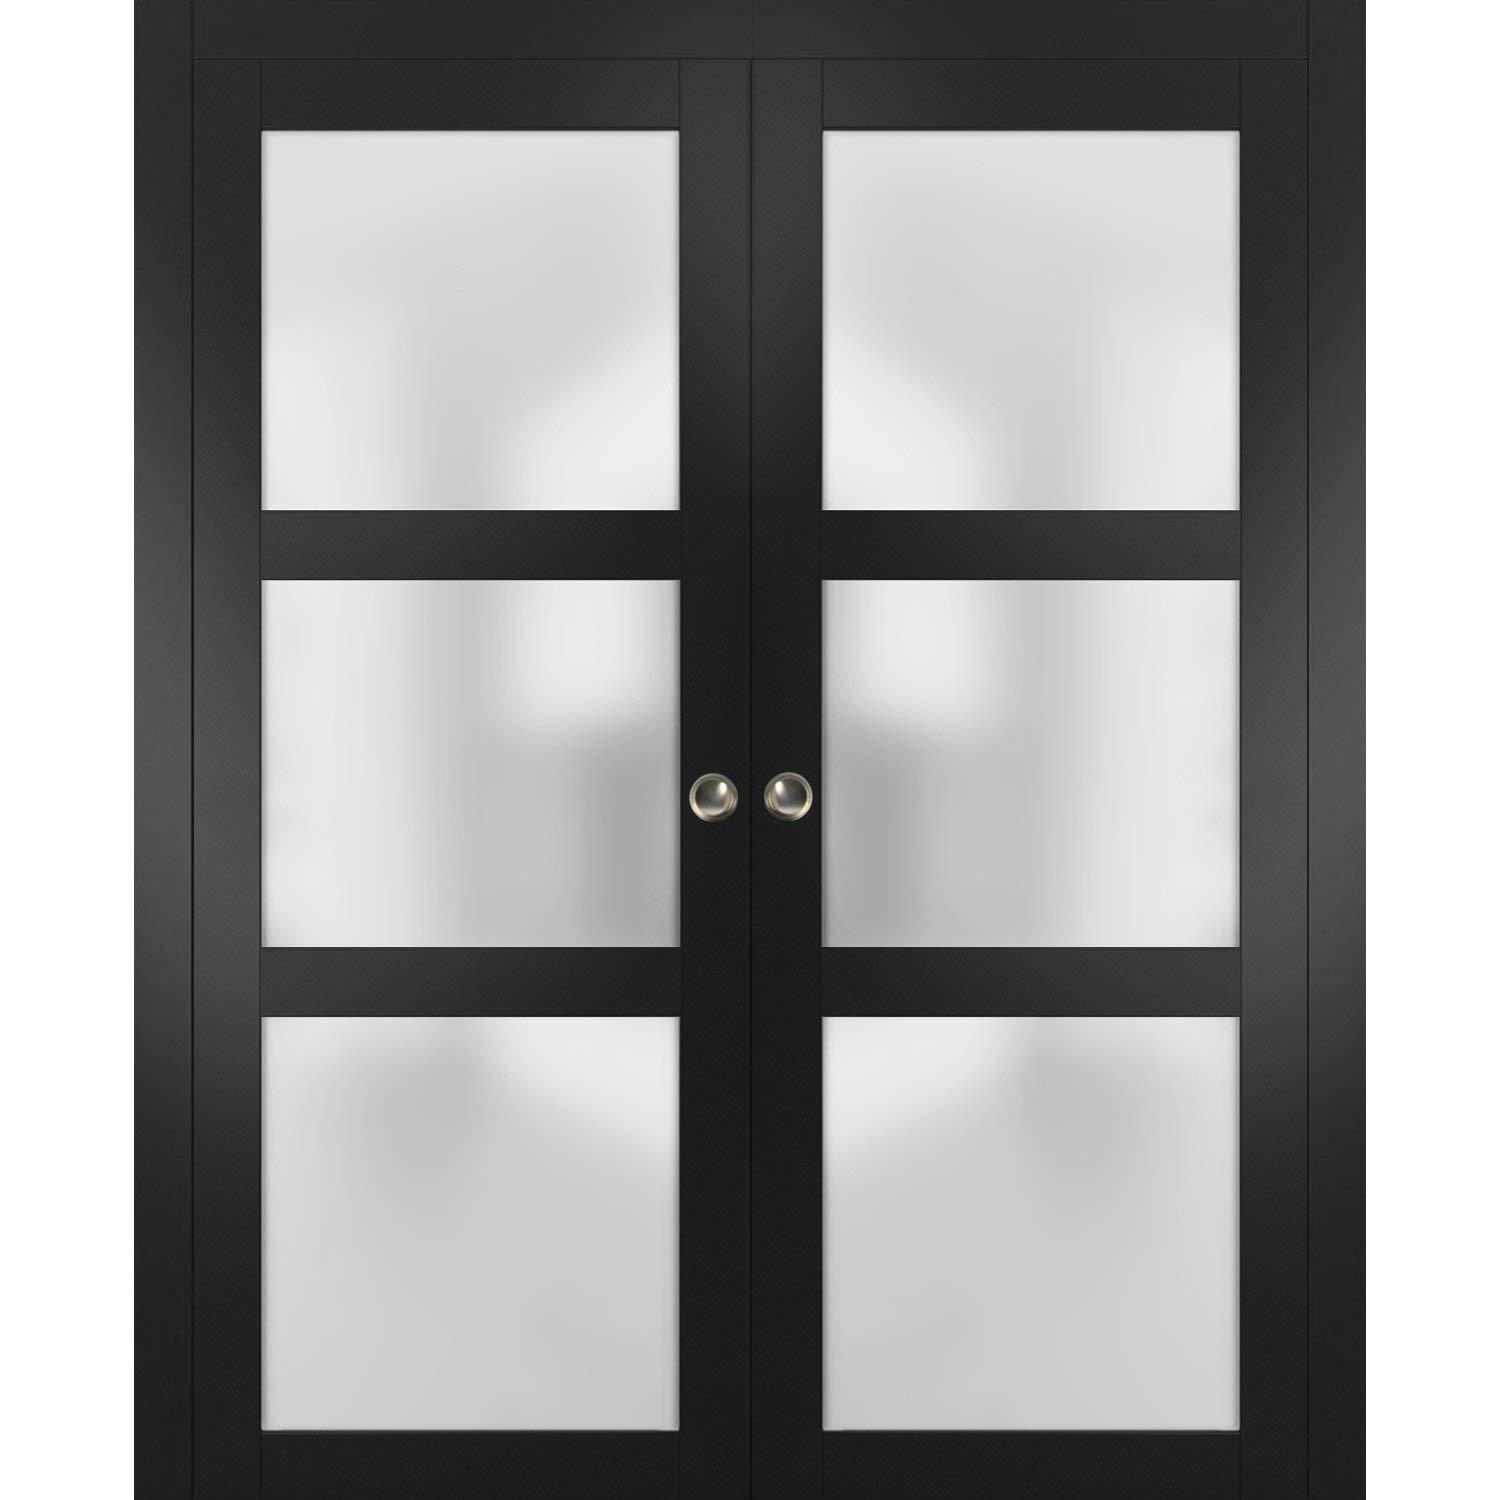 Sliding French Double Pocket Doors 36 x 80 inches Frosted Glass   Lucia 2552 Matte Black   Kit Trims Rail Hardware   Solid Wood Interior Bedroom Sturdy Doors